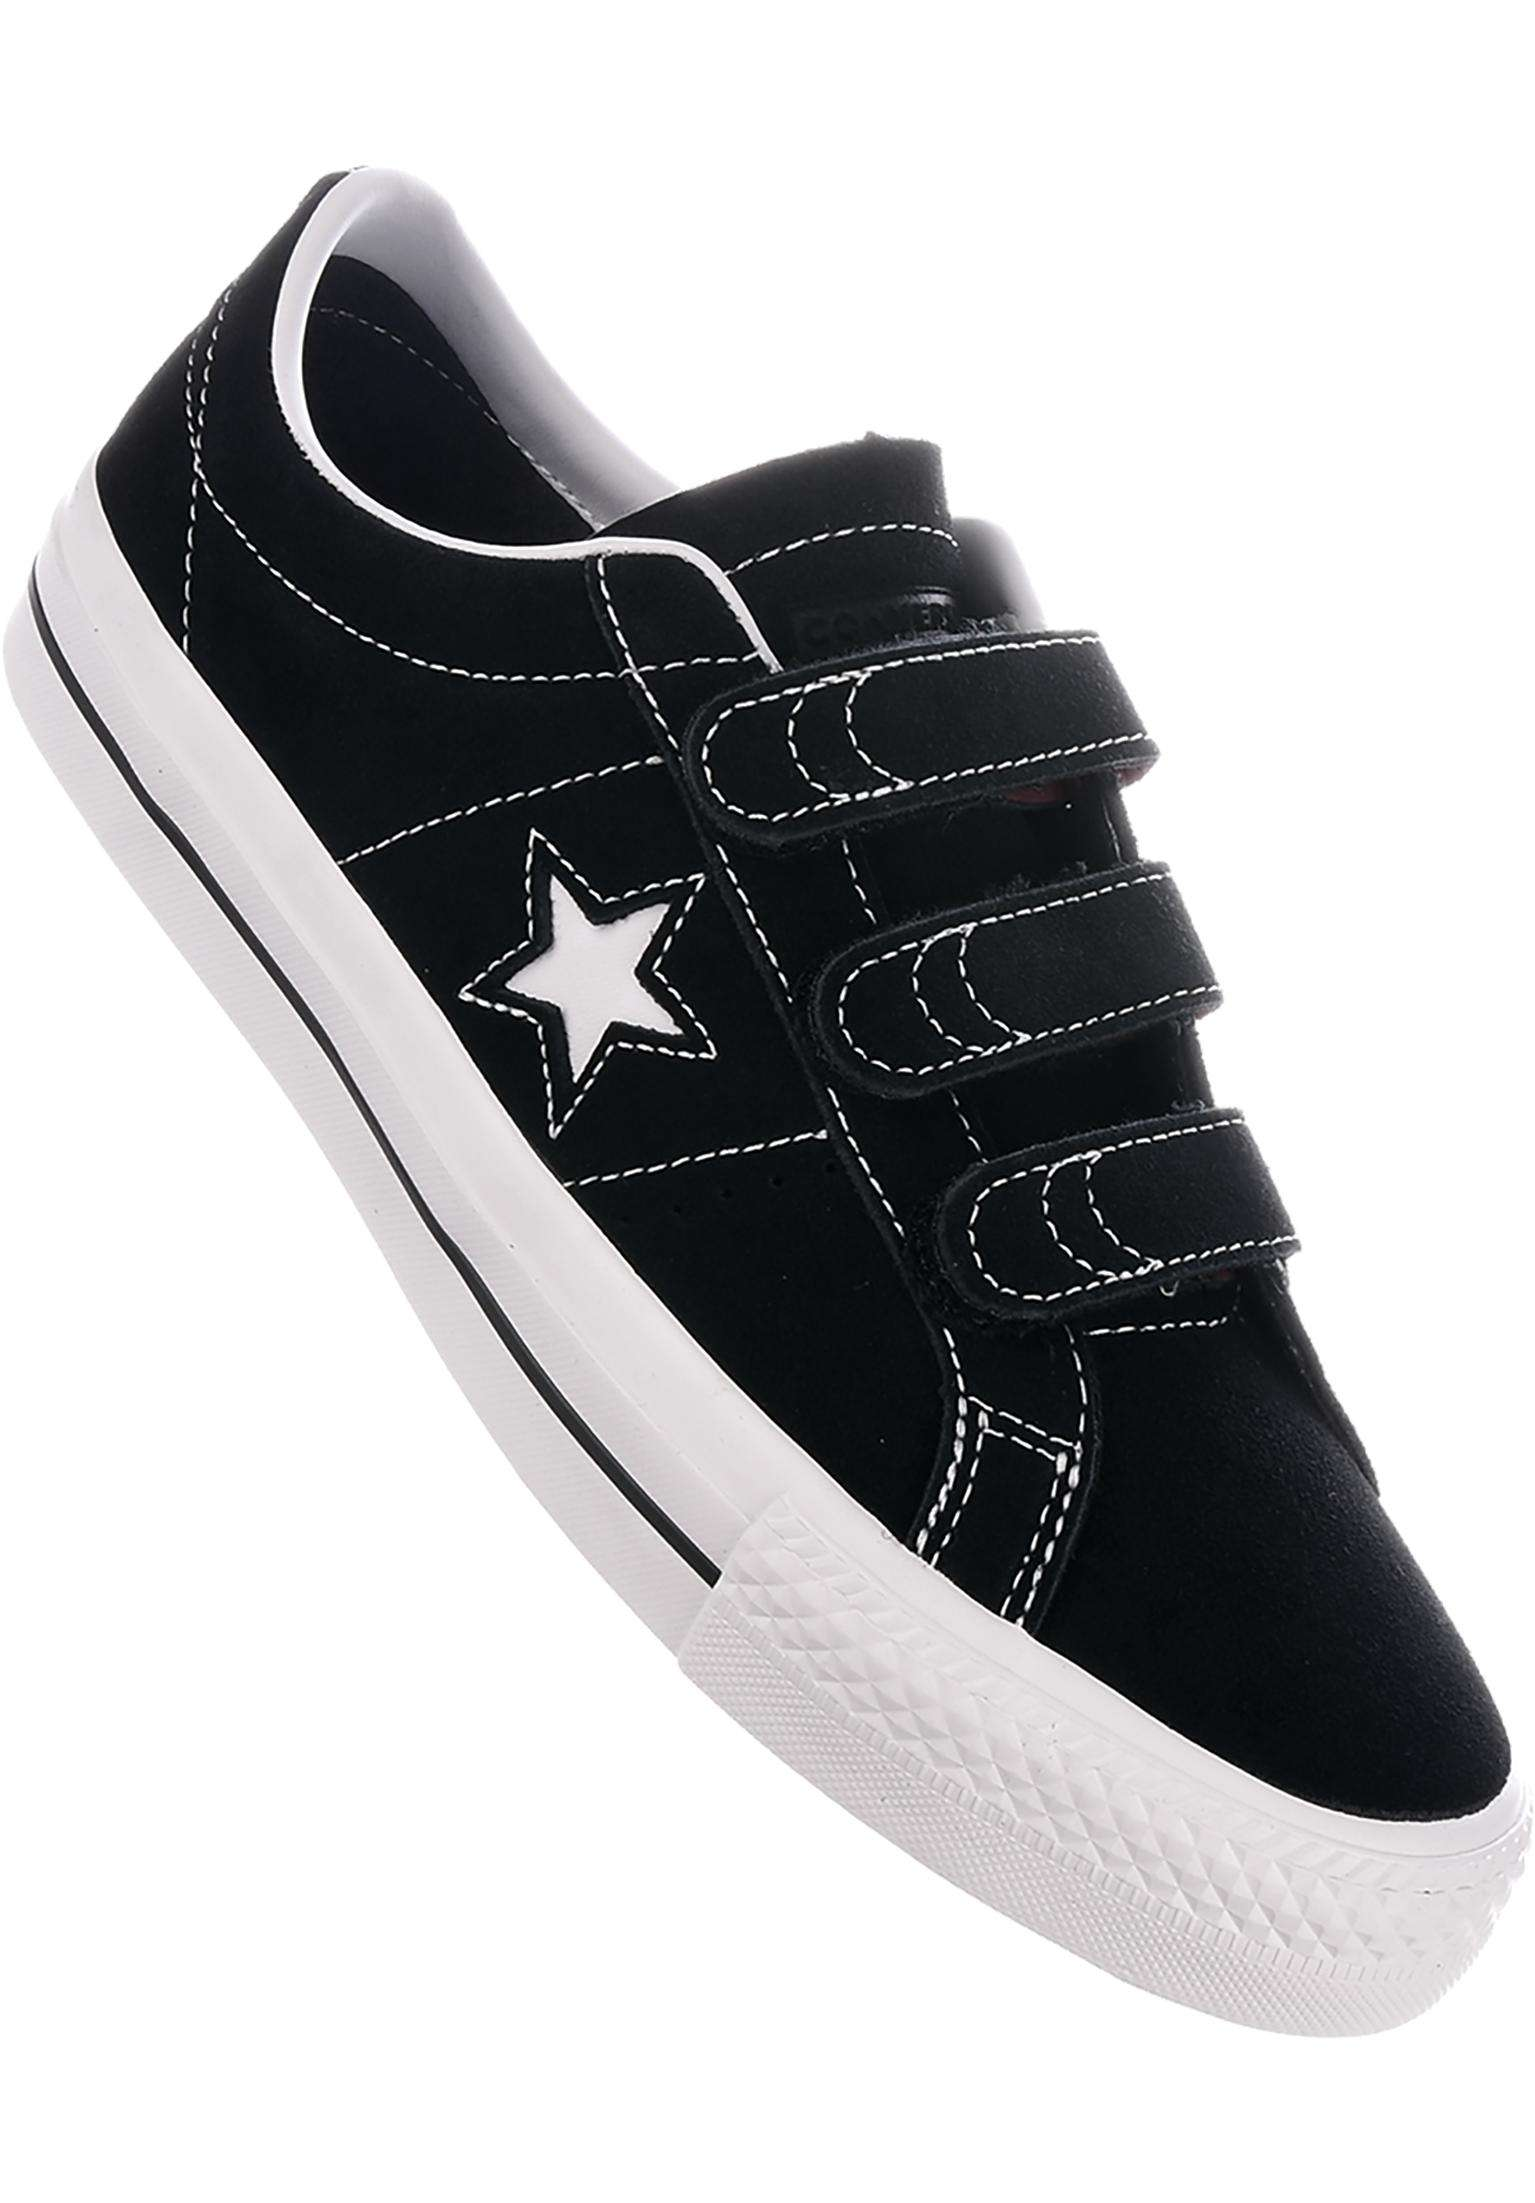 5a8c33eebc8a One Star Pro 3V Converse CONS All Shoes in black for Men